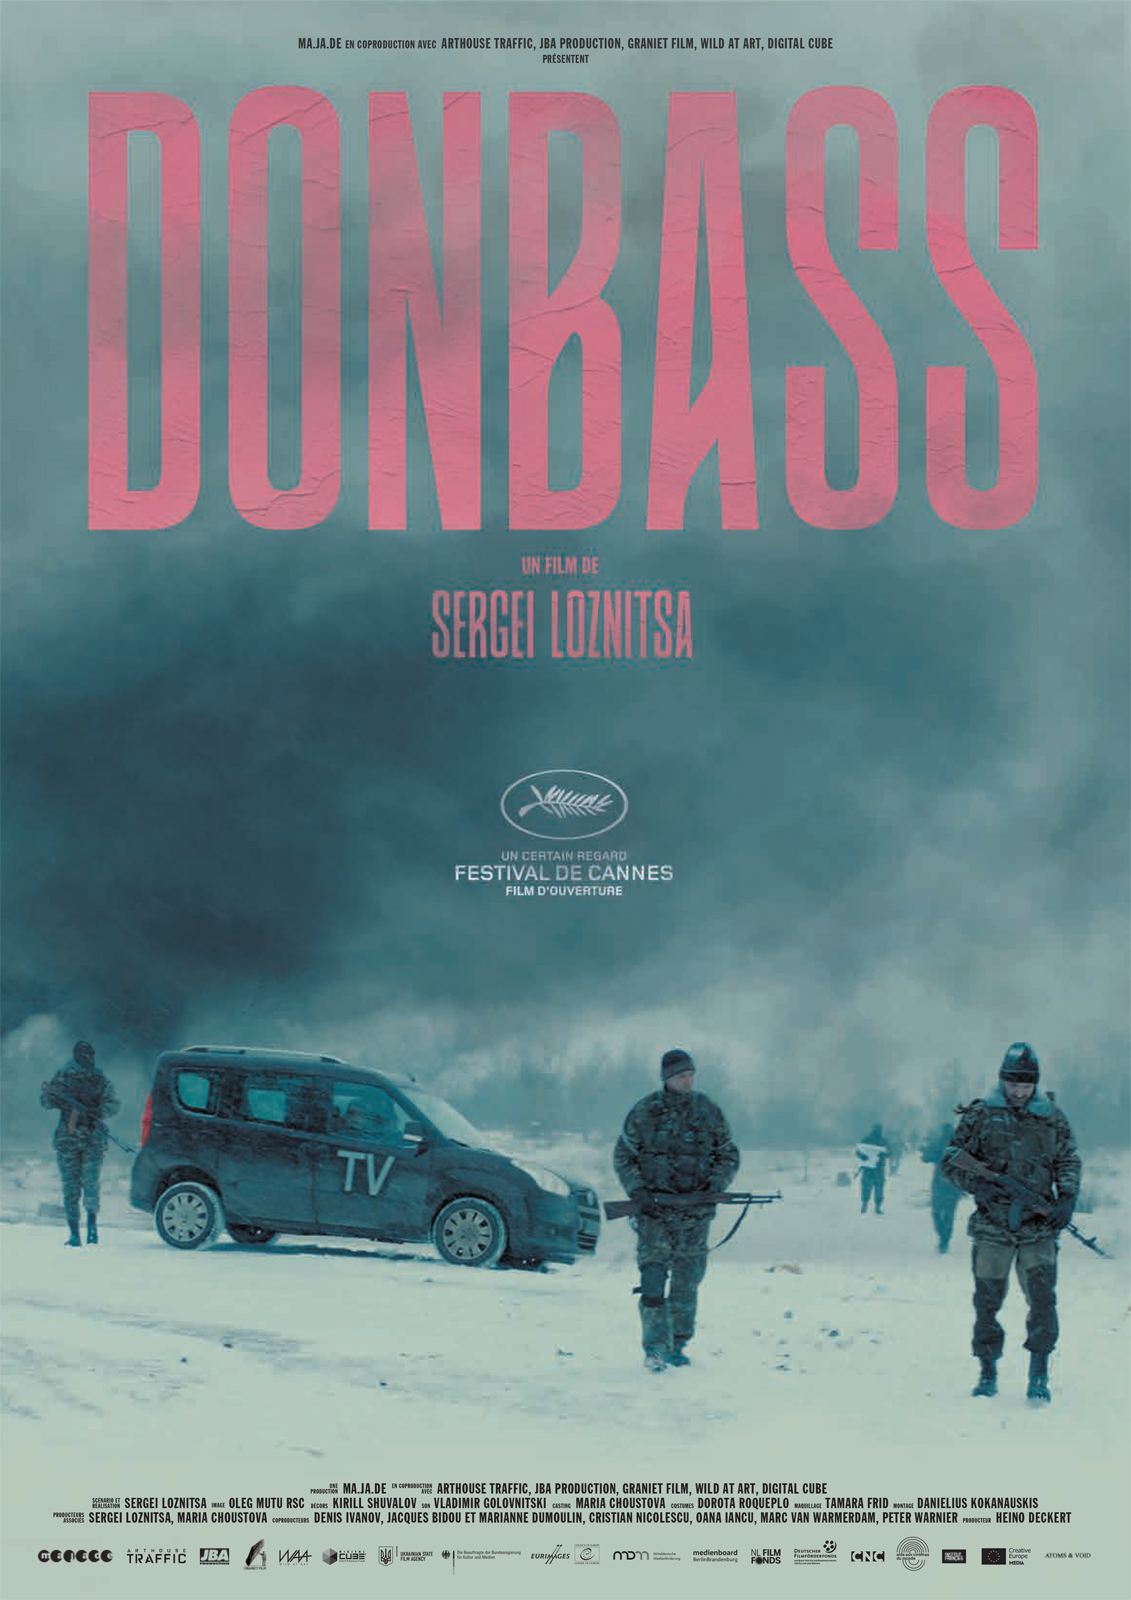 Donbass is based on amateur footage from Ukraine